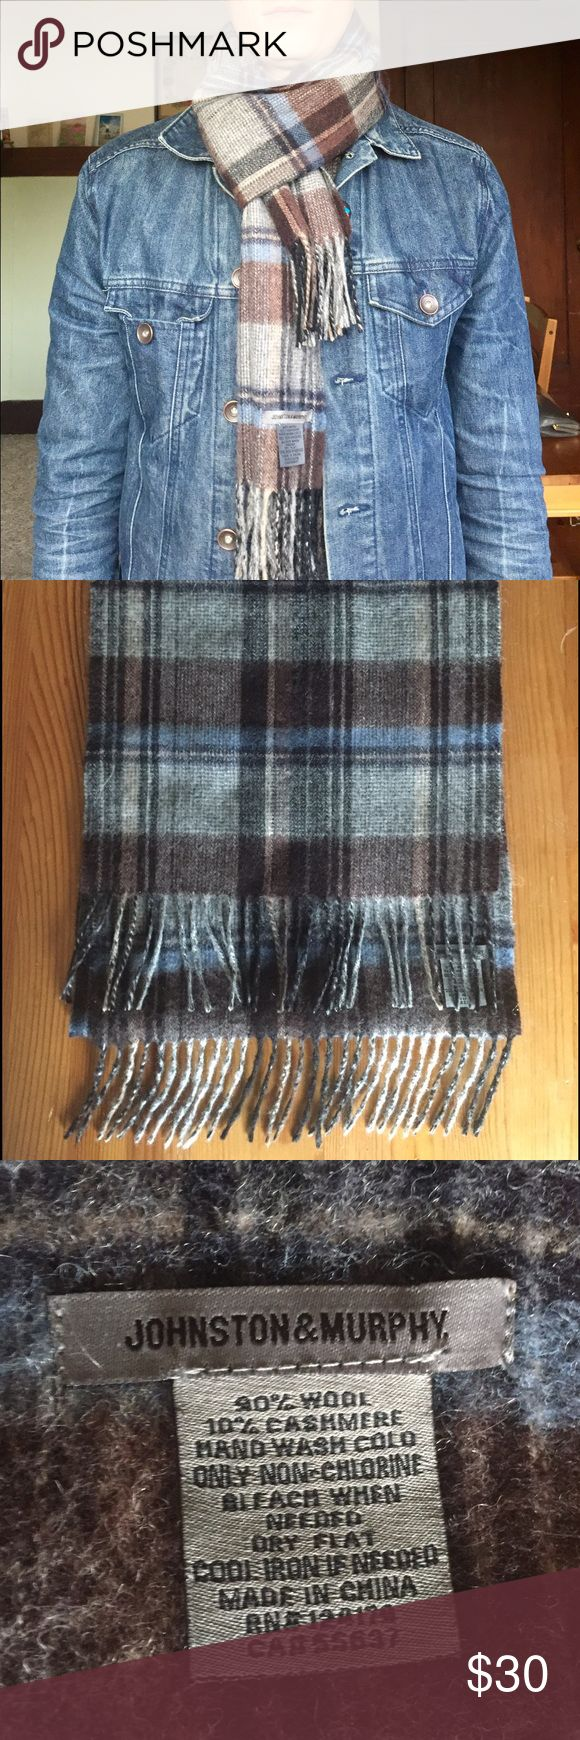 Johnson and Murphy wool, cashmere scarf Beautiful, brand new wool and cashmere scarf. Only worn 1 time. Johnston & Murphy Accessories Scarves & Wraps